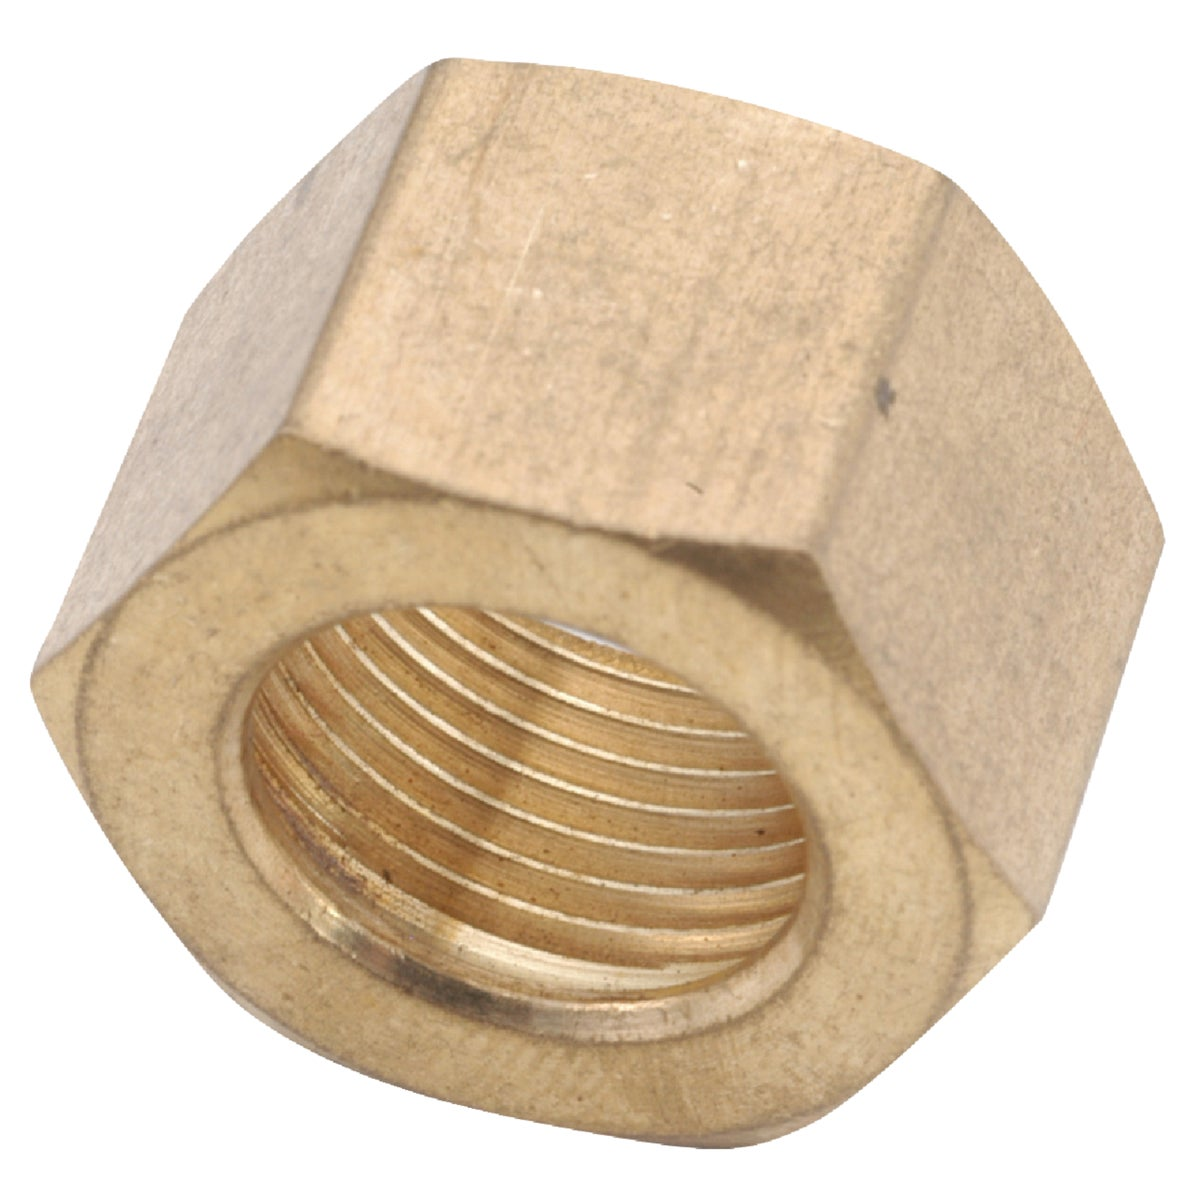 "1/4"" COMPRESSION NUT"